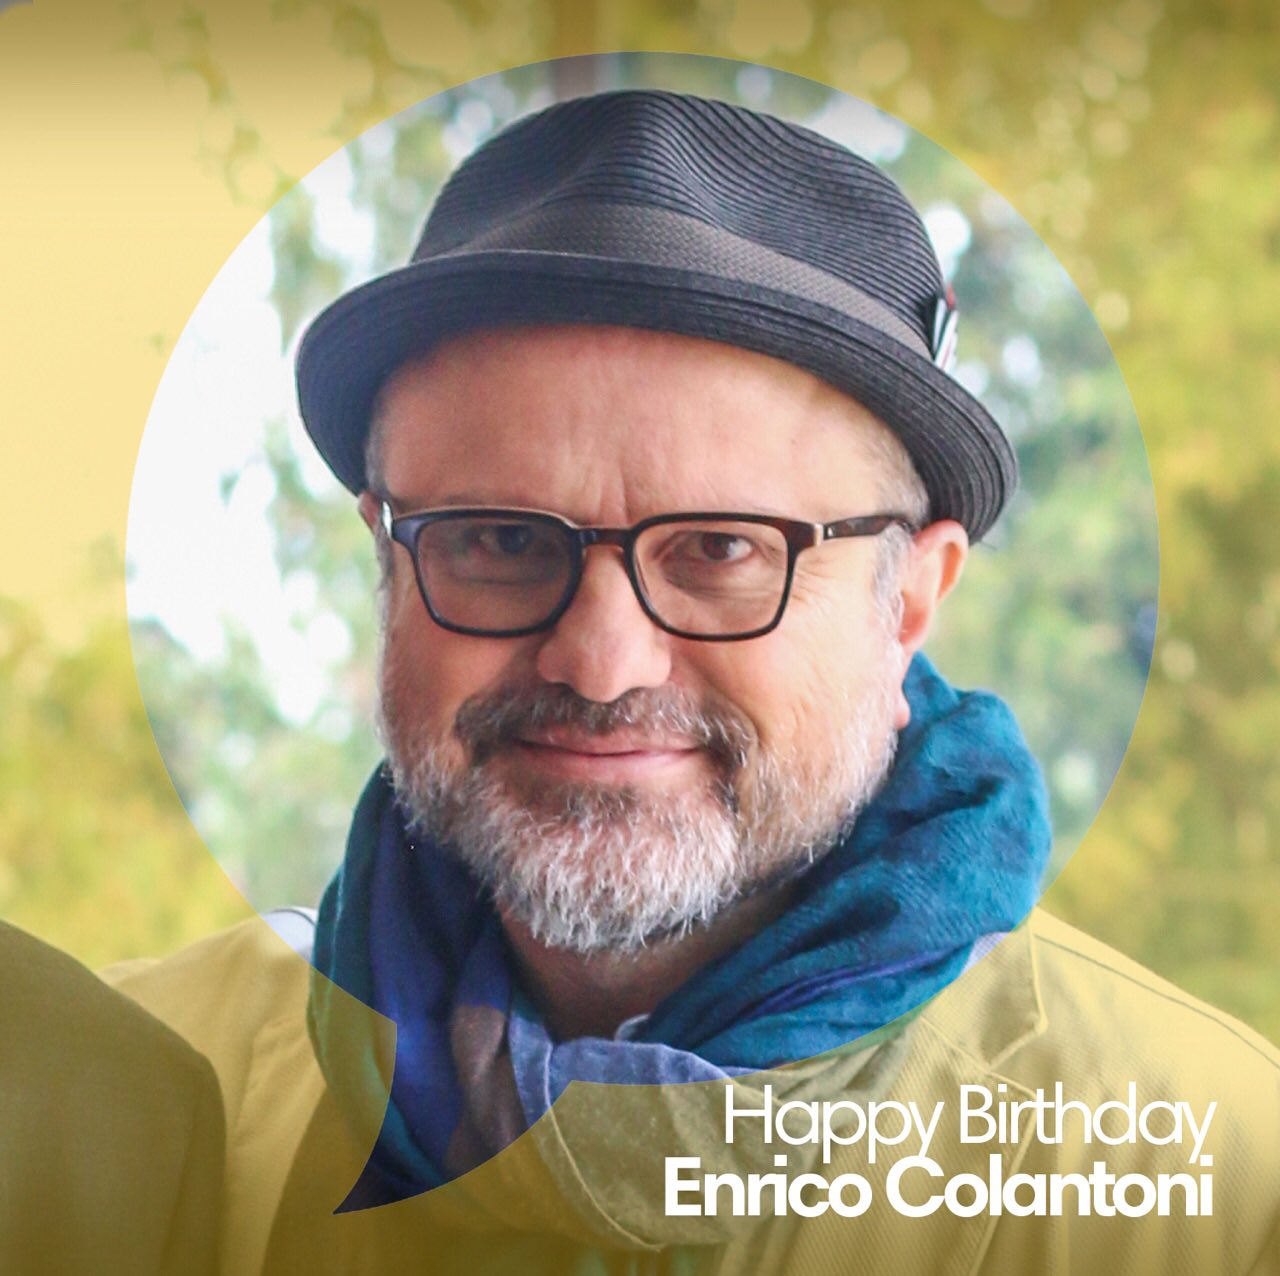 Happy Birthday to our 2017 Indie Leader, Enrico Colantoni!